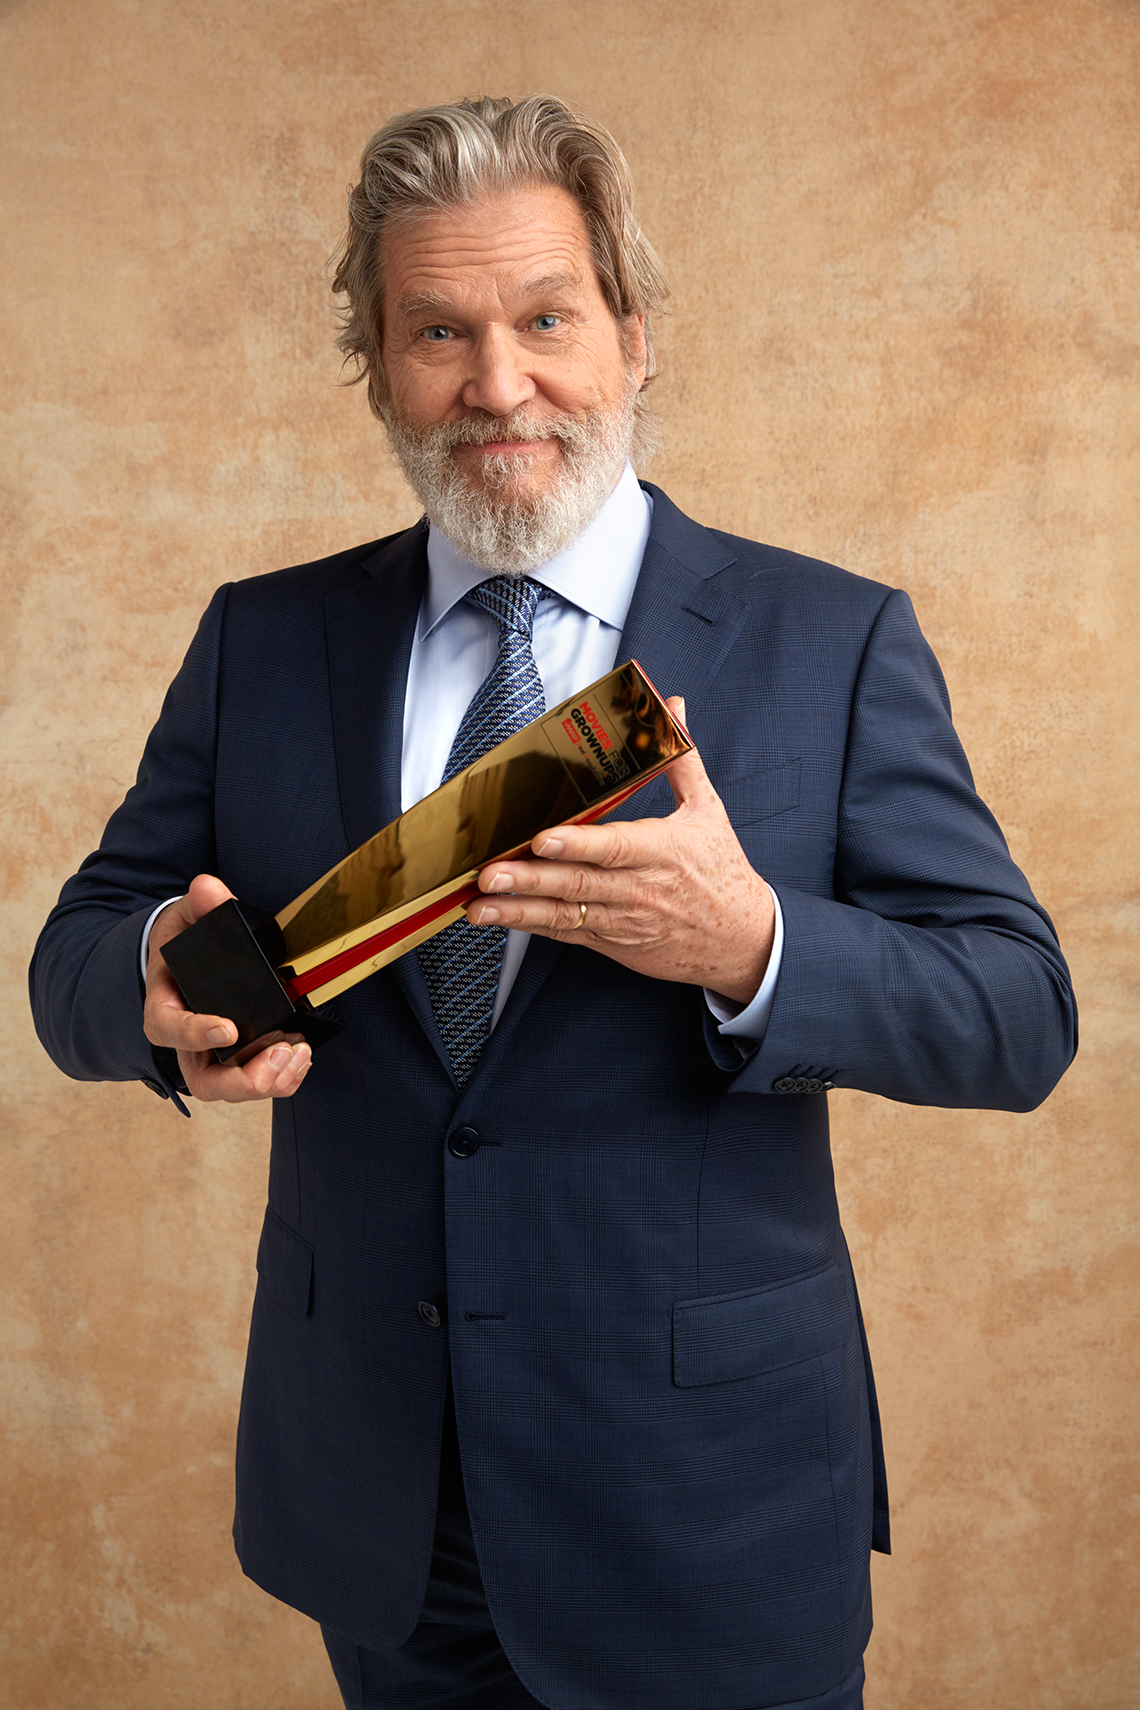 Jeff Bridges at the 16th Annual AARP The Magazine's Movies for Grownups Awards